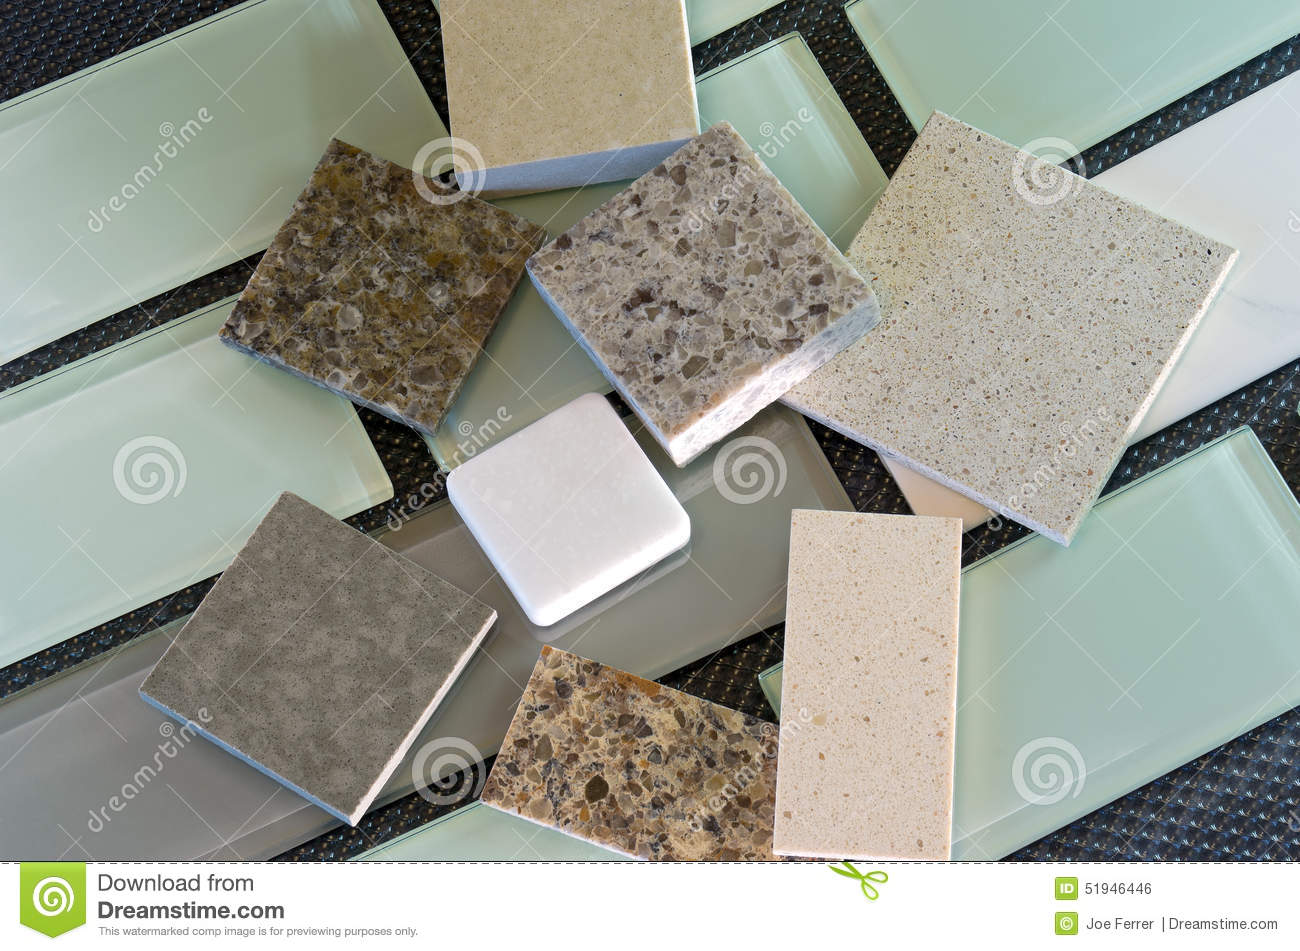 Quartz Tiles For Kitchen Countertops : -tiles-quartz-countertop-samples-glass-subway-tile-used-kitchen ...